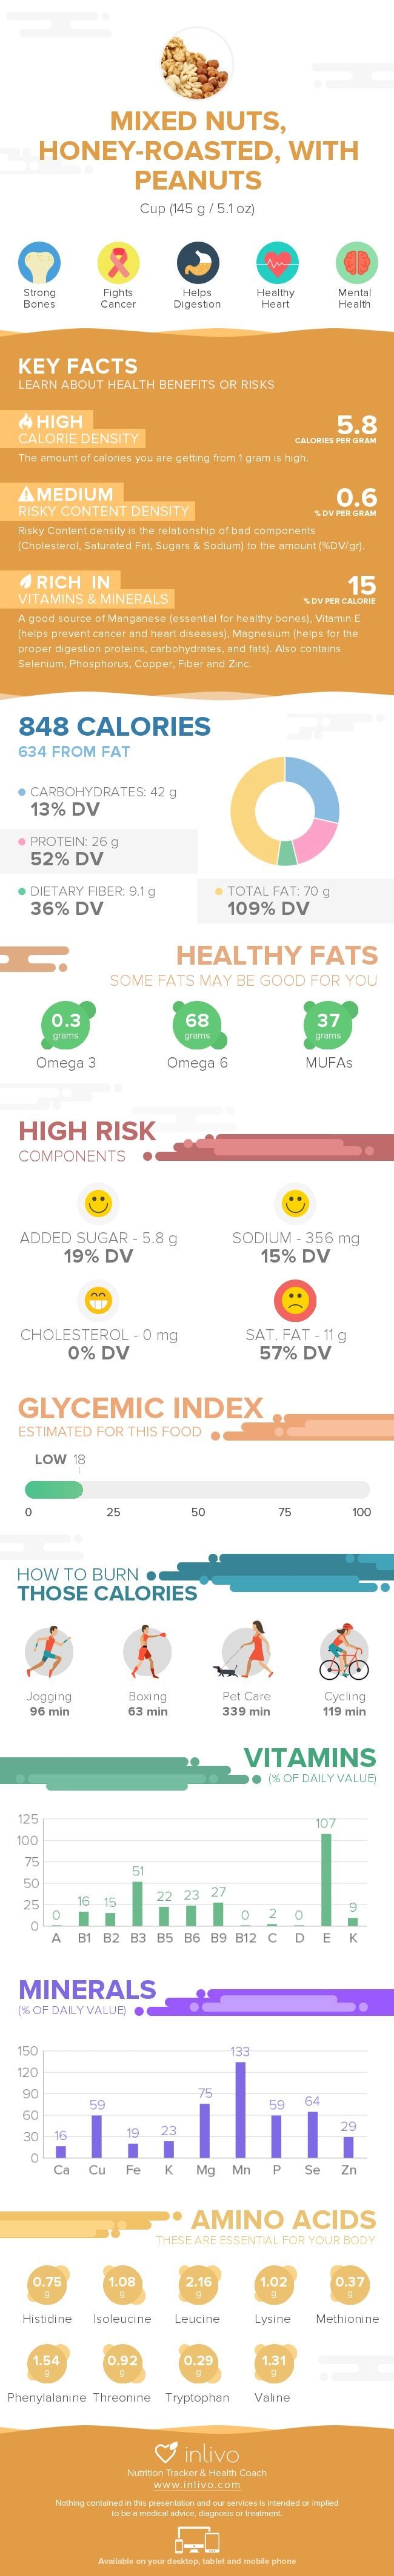 Mixed Nuts, Honey-roasted, With Peanuts Nutrition Infographic #nutrigraphic #inlivo